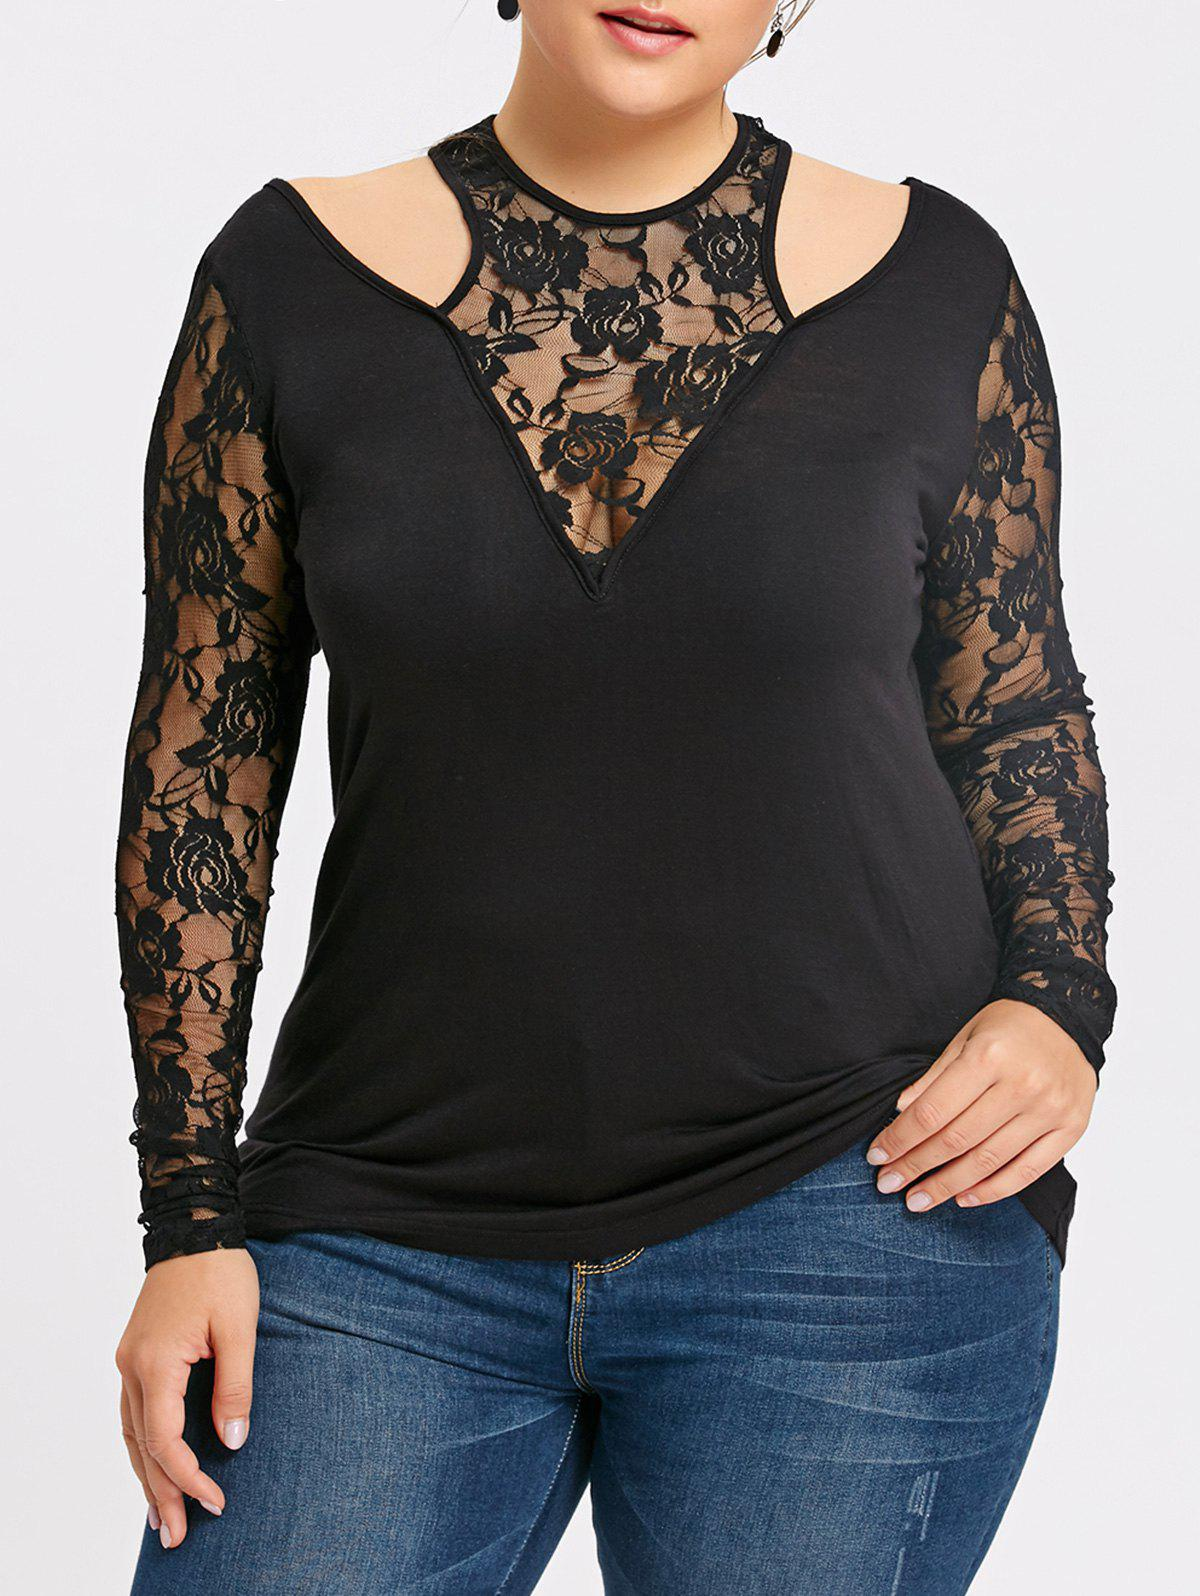 Plus Size Lace Insert Sheer Cut Out Top plus size lace insert sheer leggings